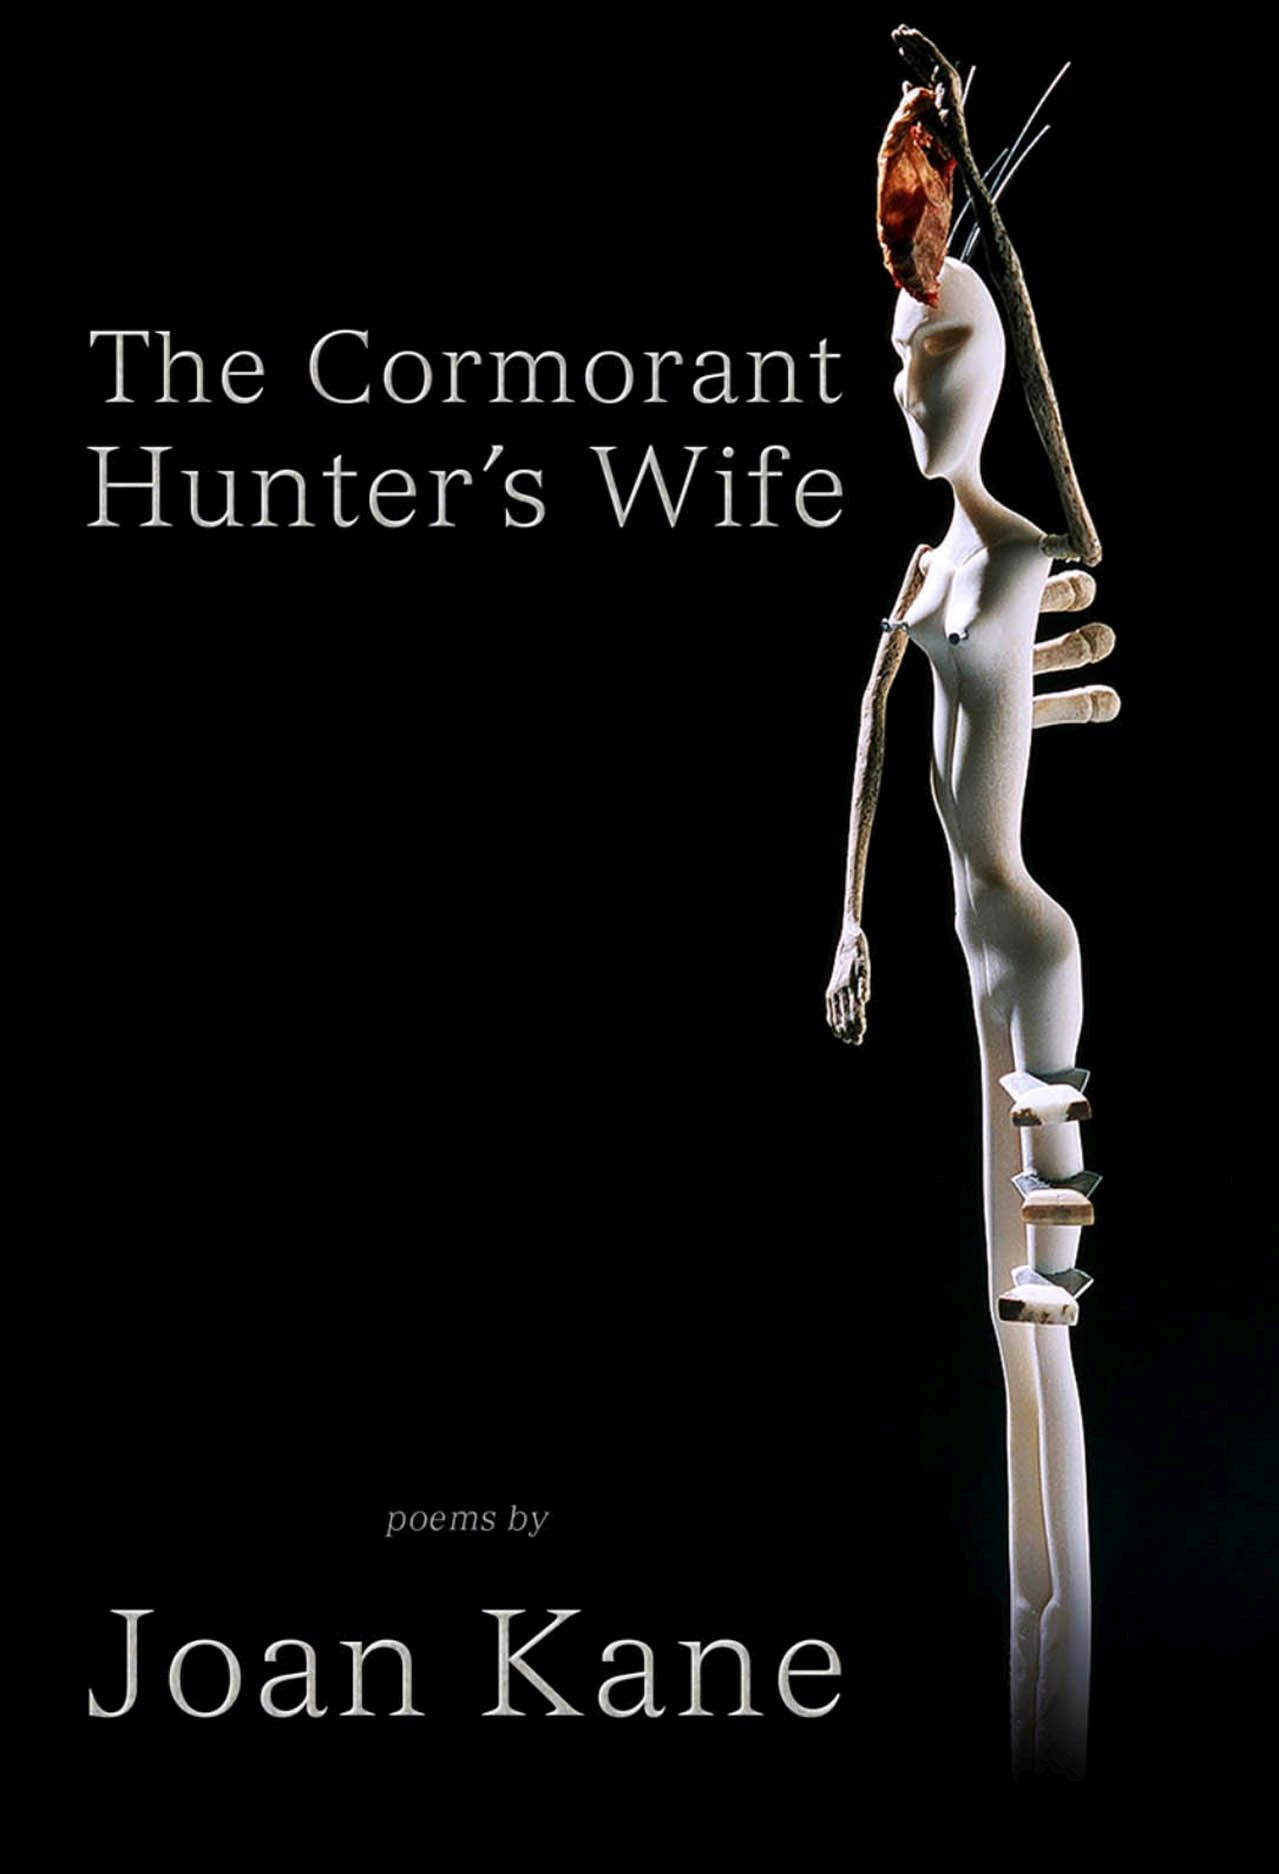 The Cormorant Hunter's Wife